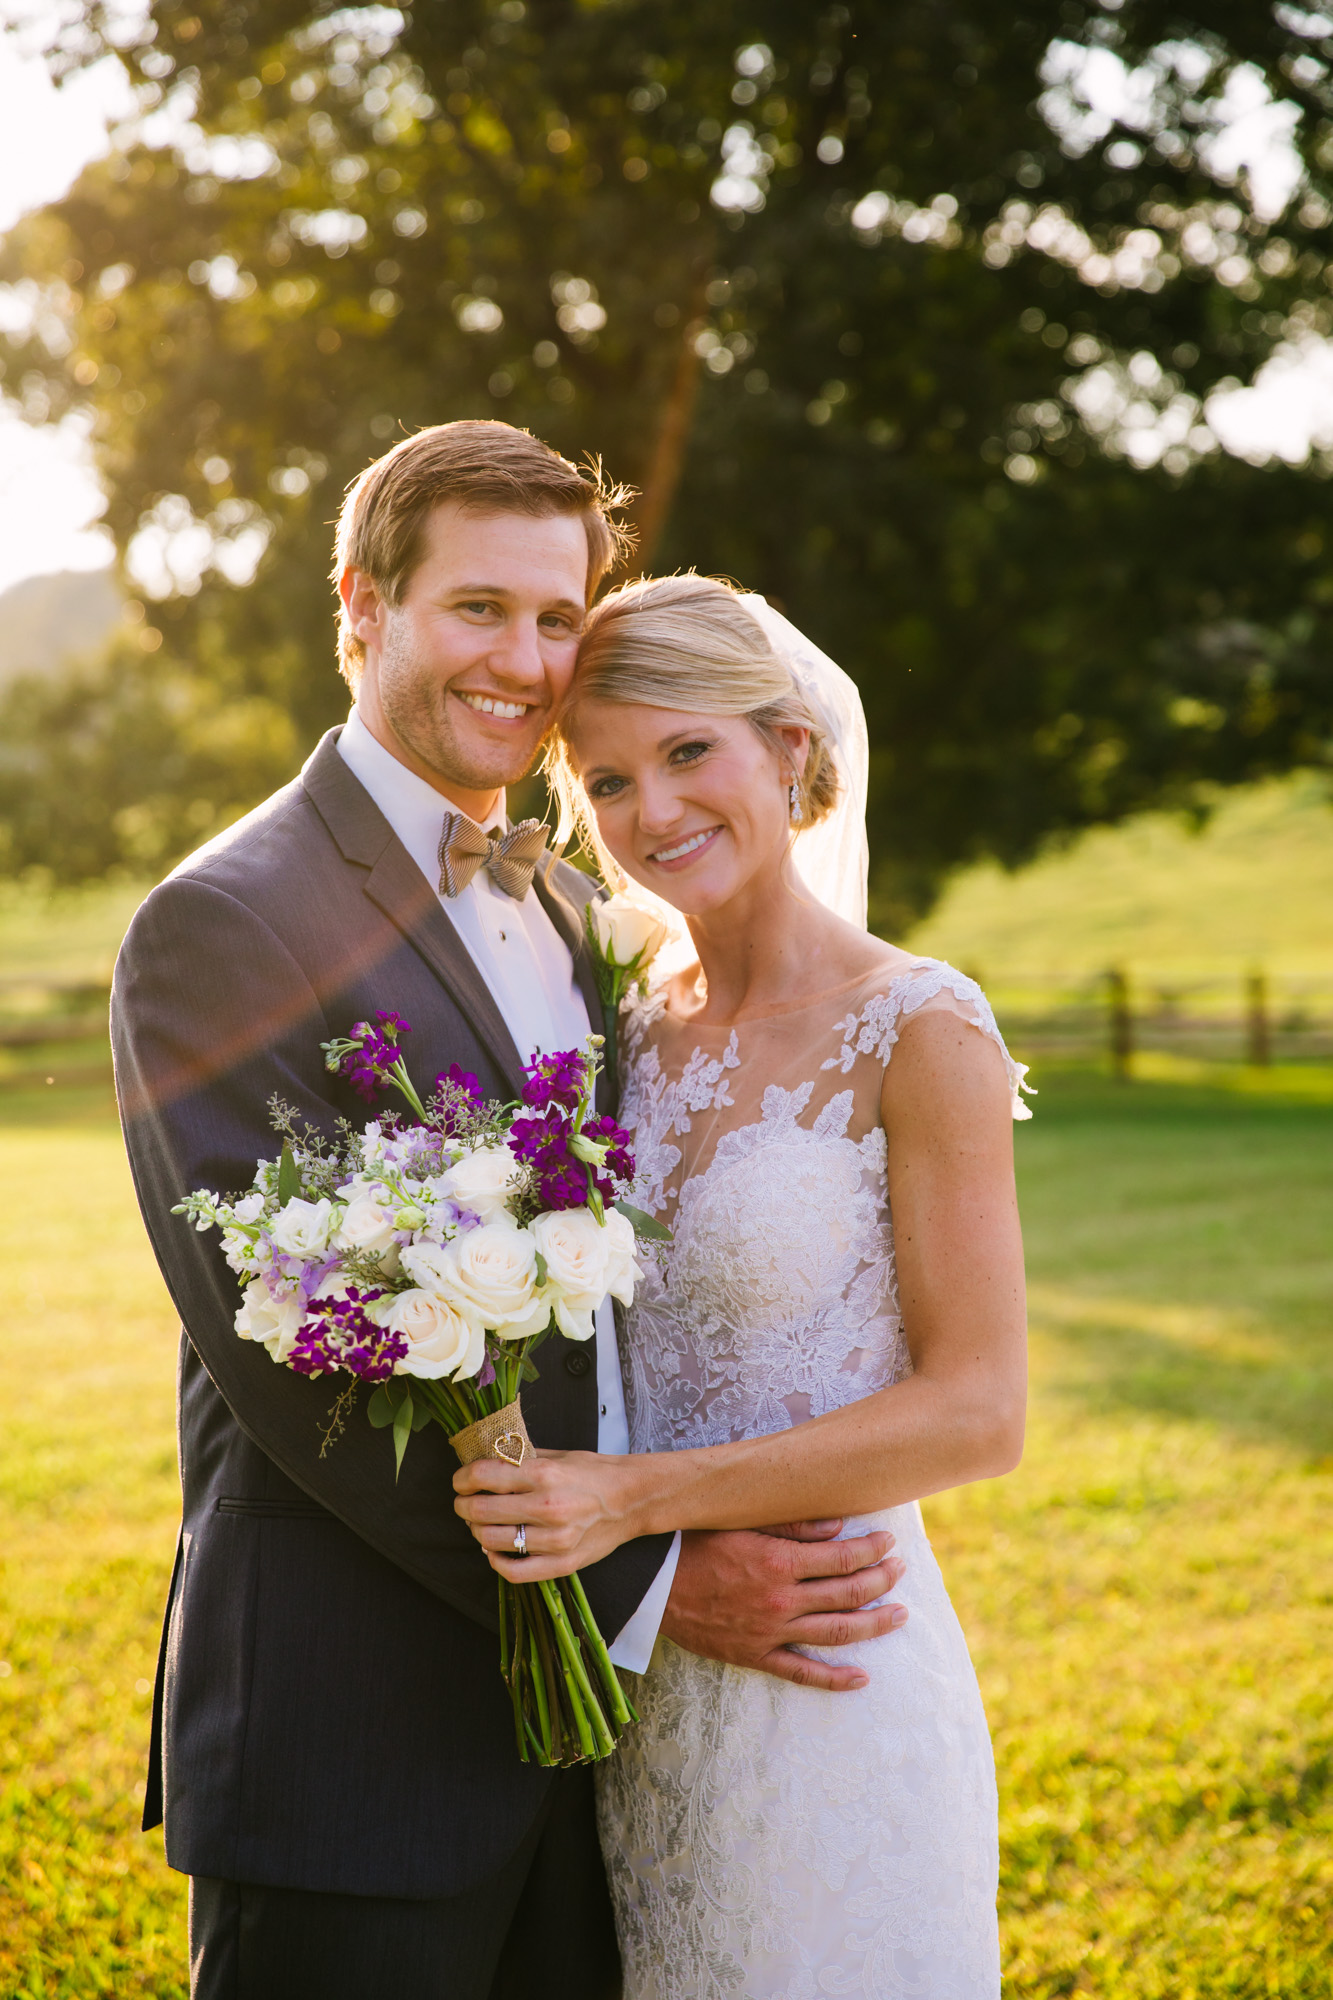 Waynesville, NC Wedding Photography | Bride and Groom Smiling in the Sun Flare